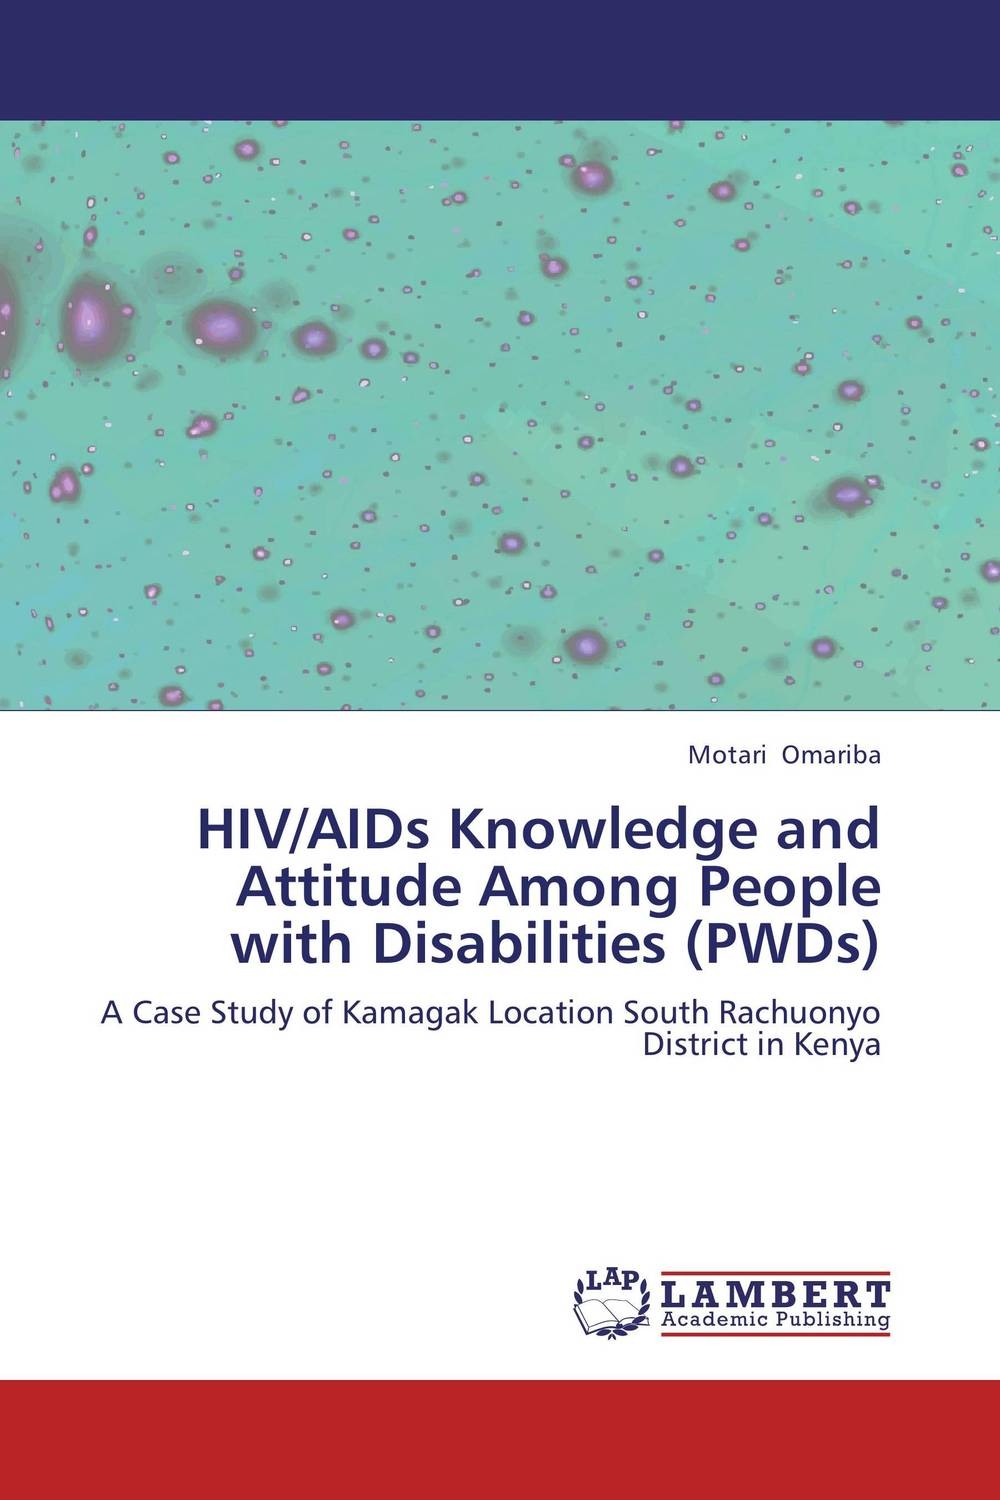 HIV/AIDs Knowledge and Attitude Among People with Disabilities (PWDs) hiv and aids